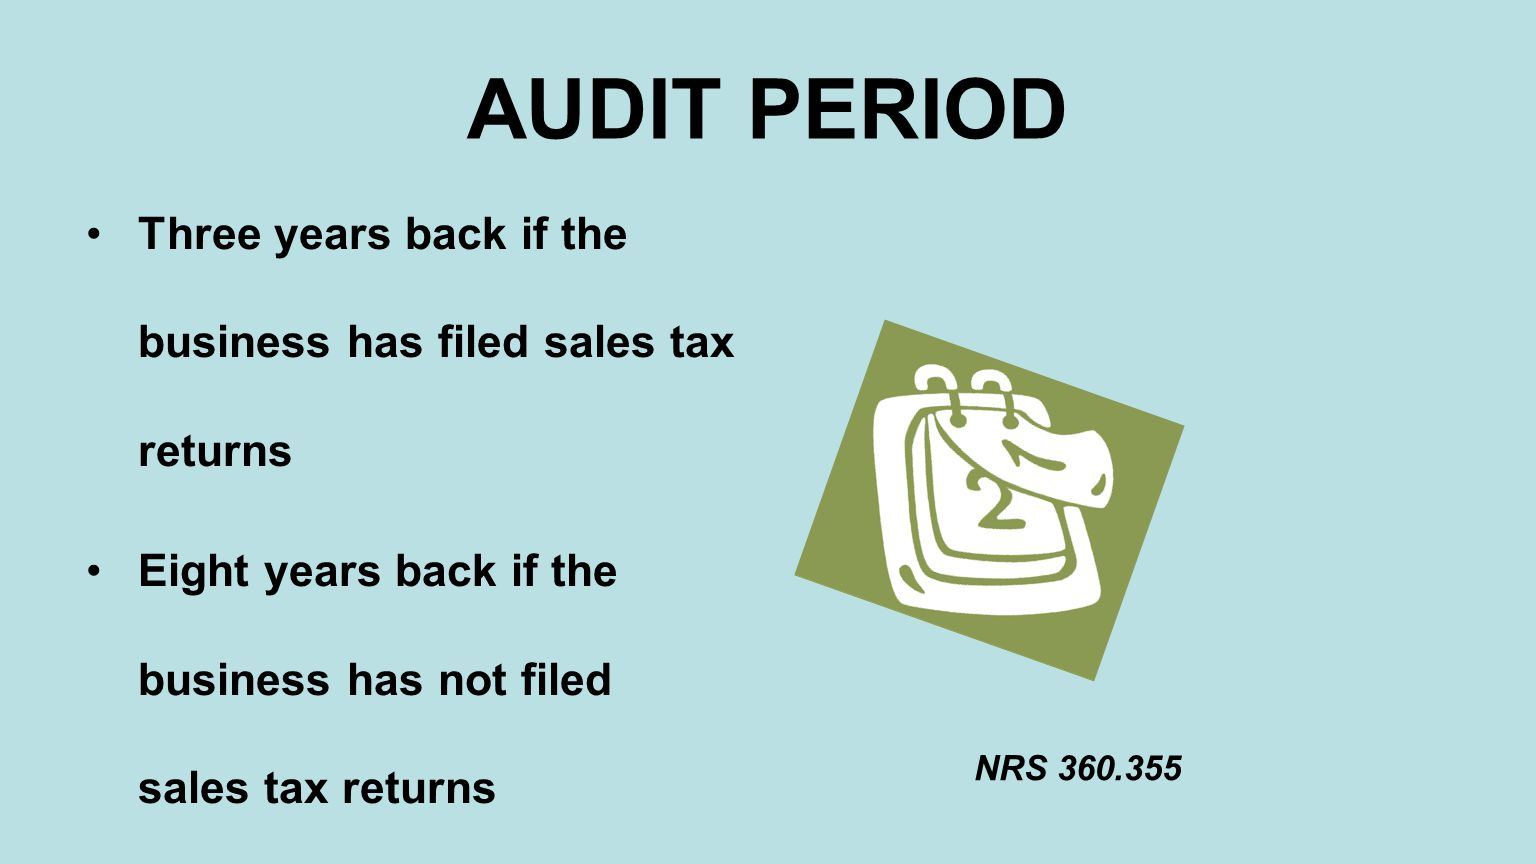 Deficiency Notice Pay attention to the due date – 45 days from date of letter.